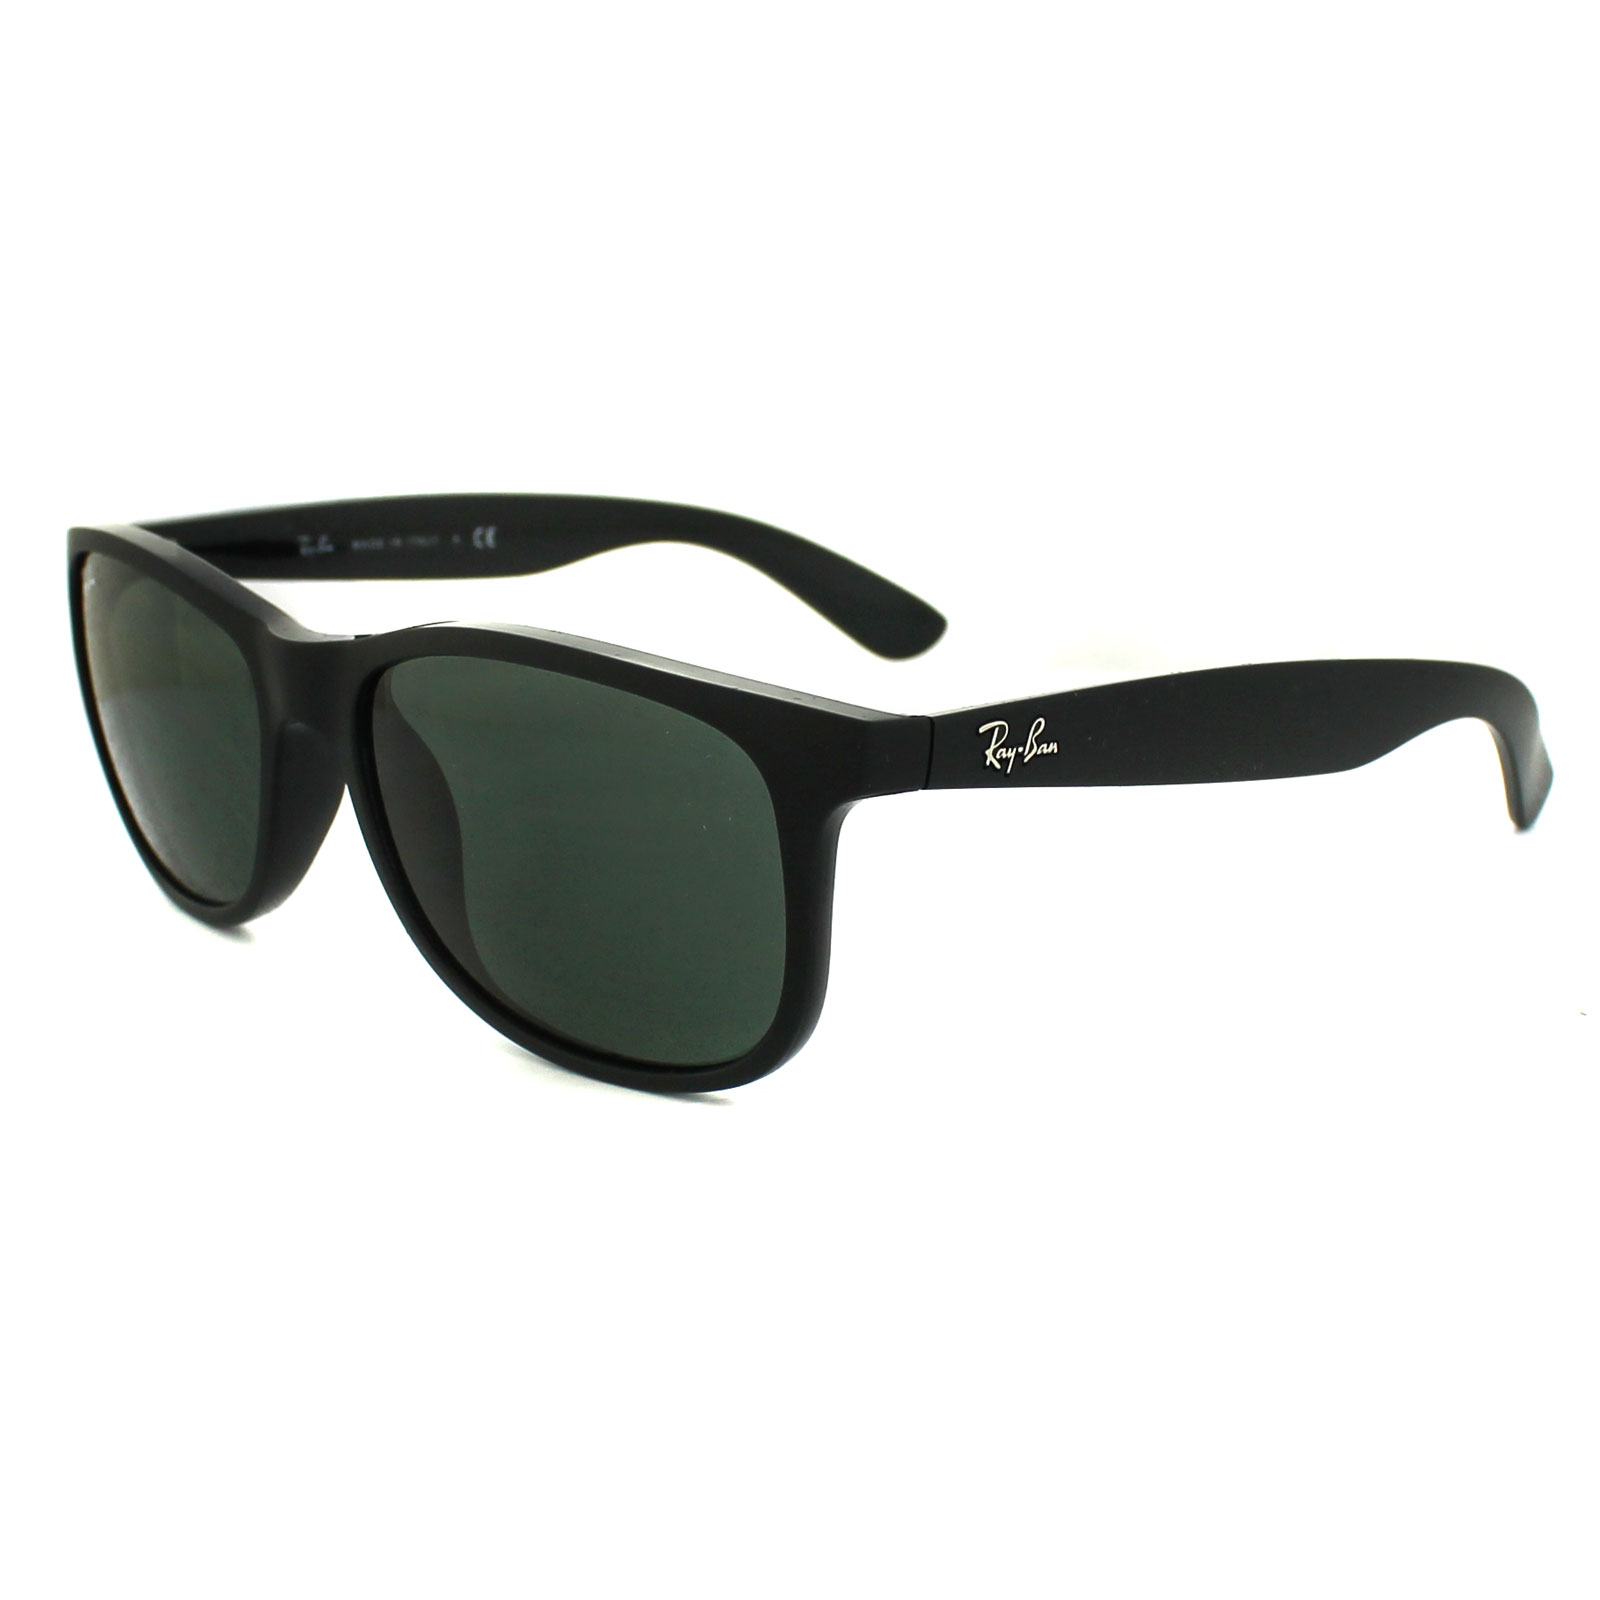 Cheap Ray - Ban Andy 4202 Sunglasses - Discounted Sunglasses